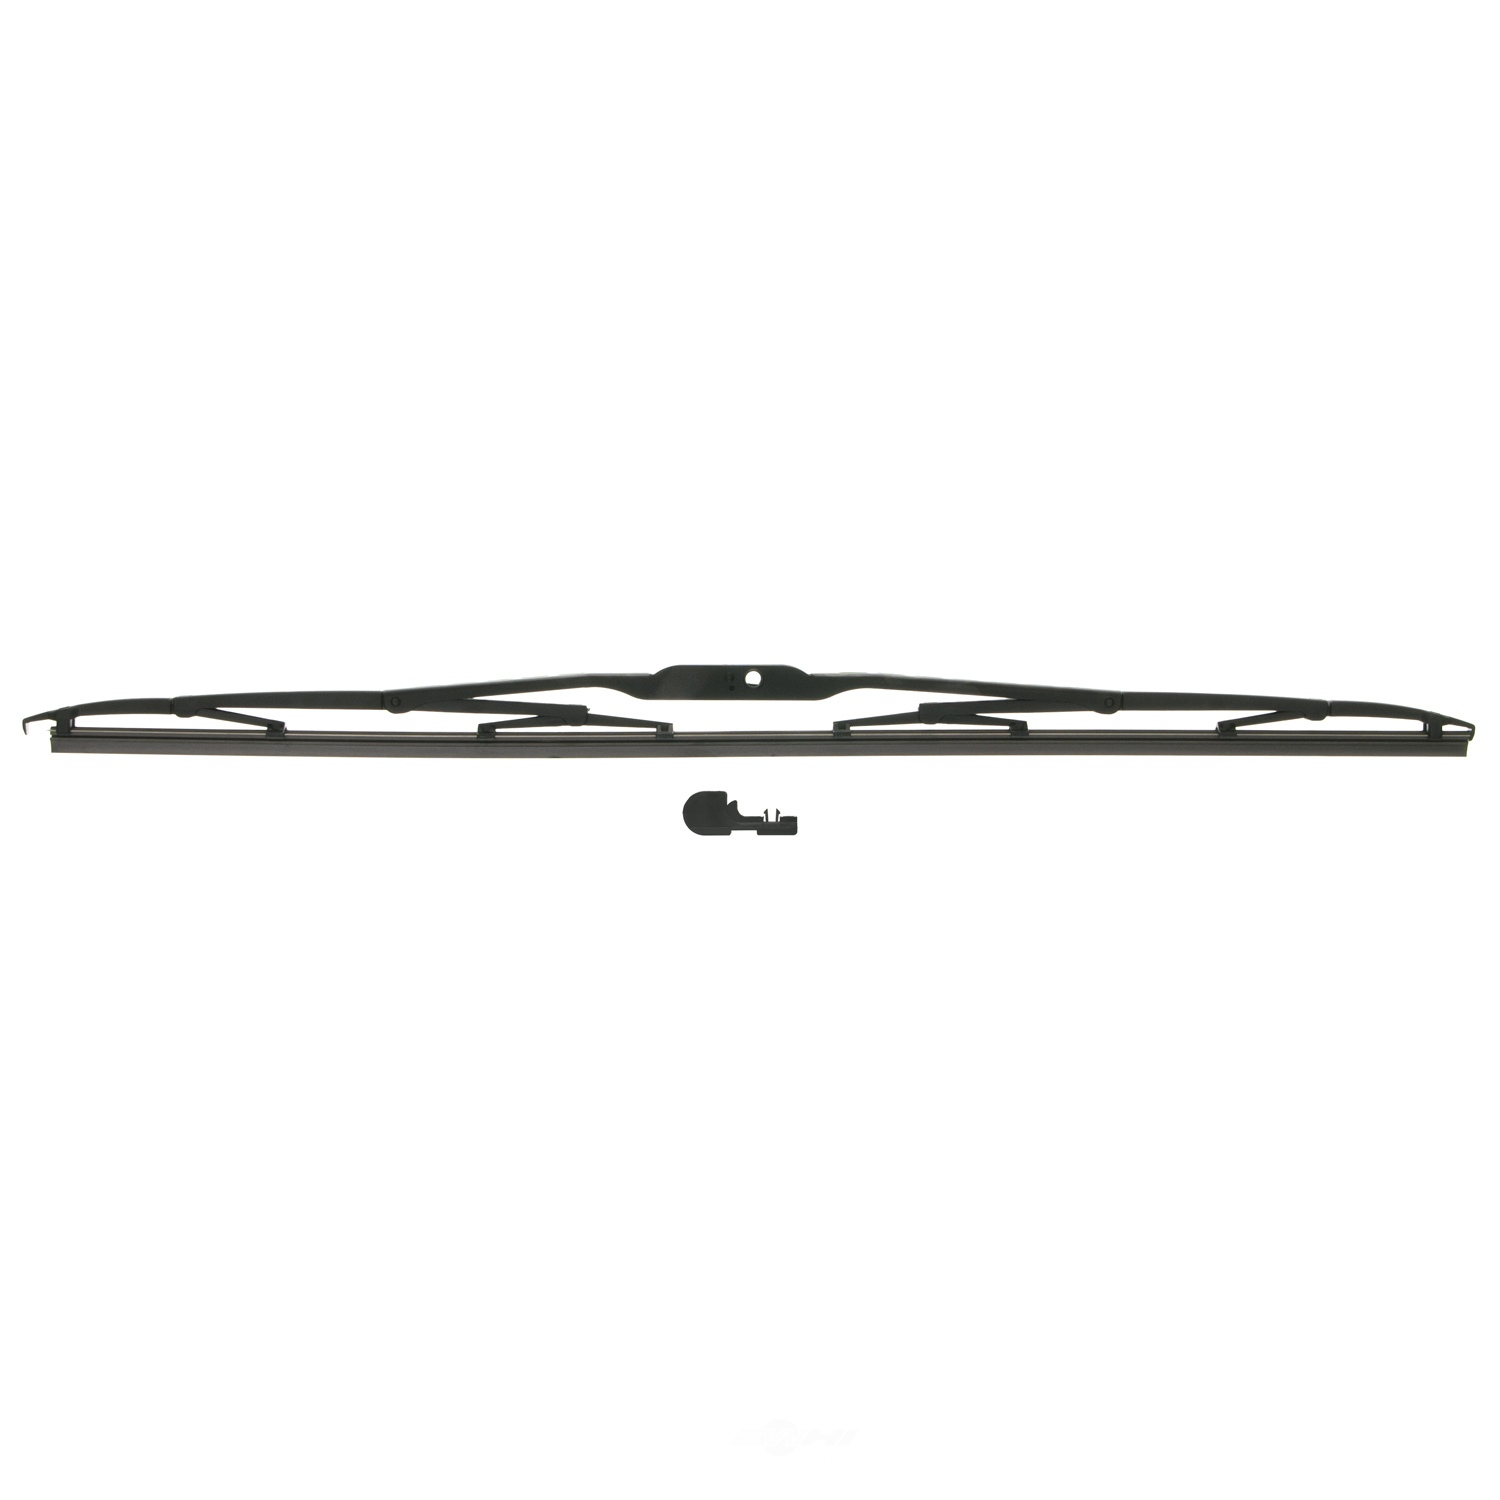 ANCO WIPER PRODUCTS - 31-series Wiper Blade (Left) - ANC 31-24